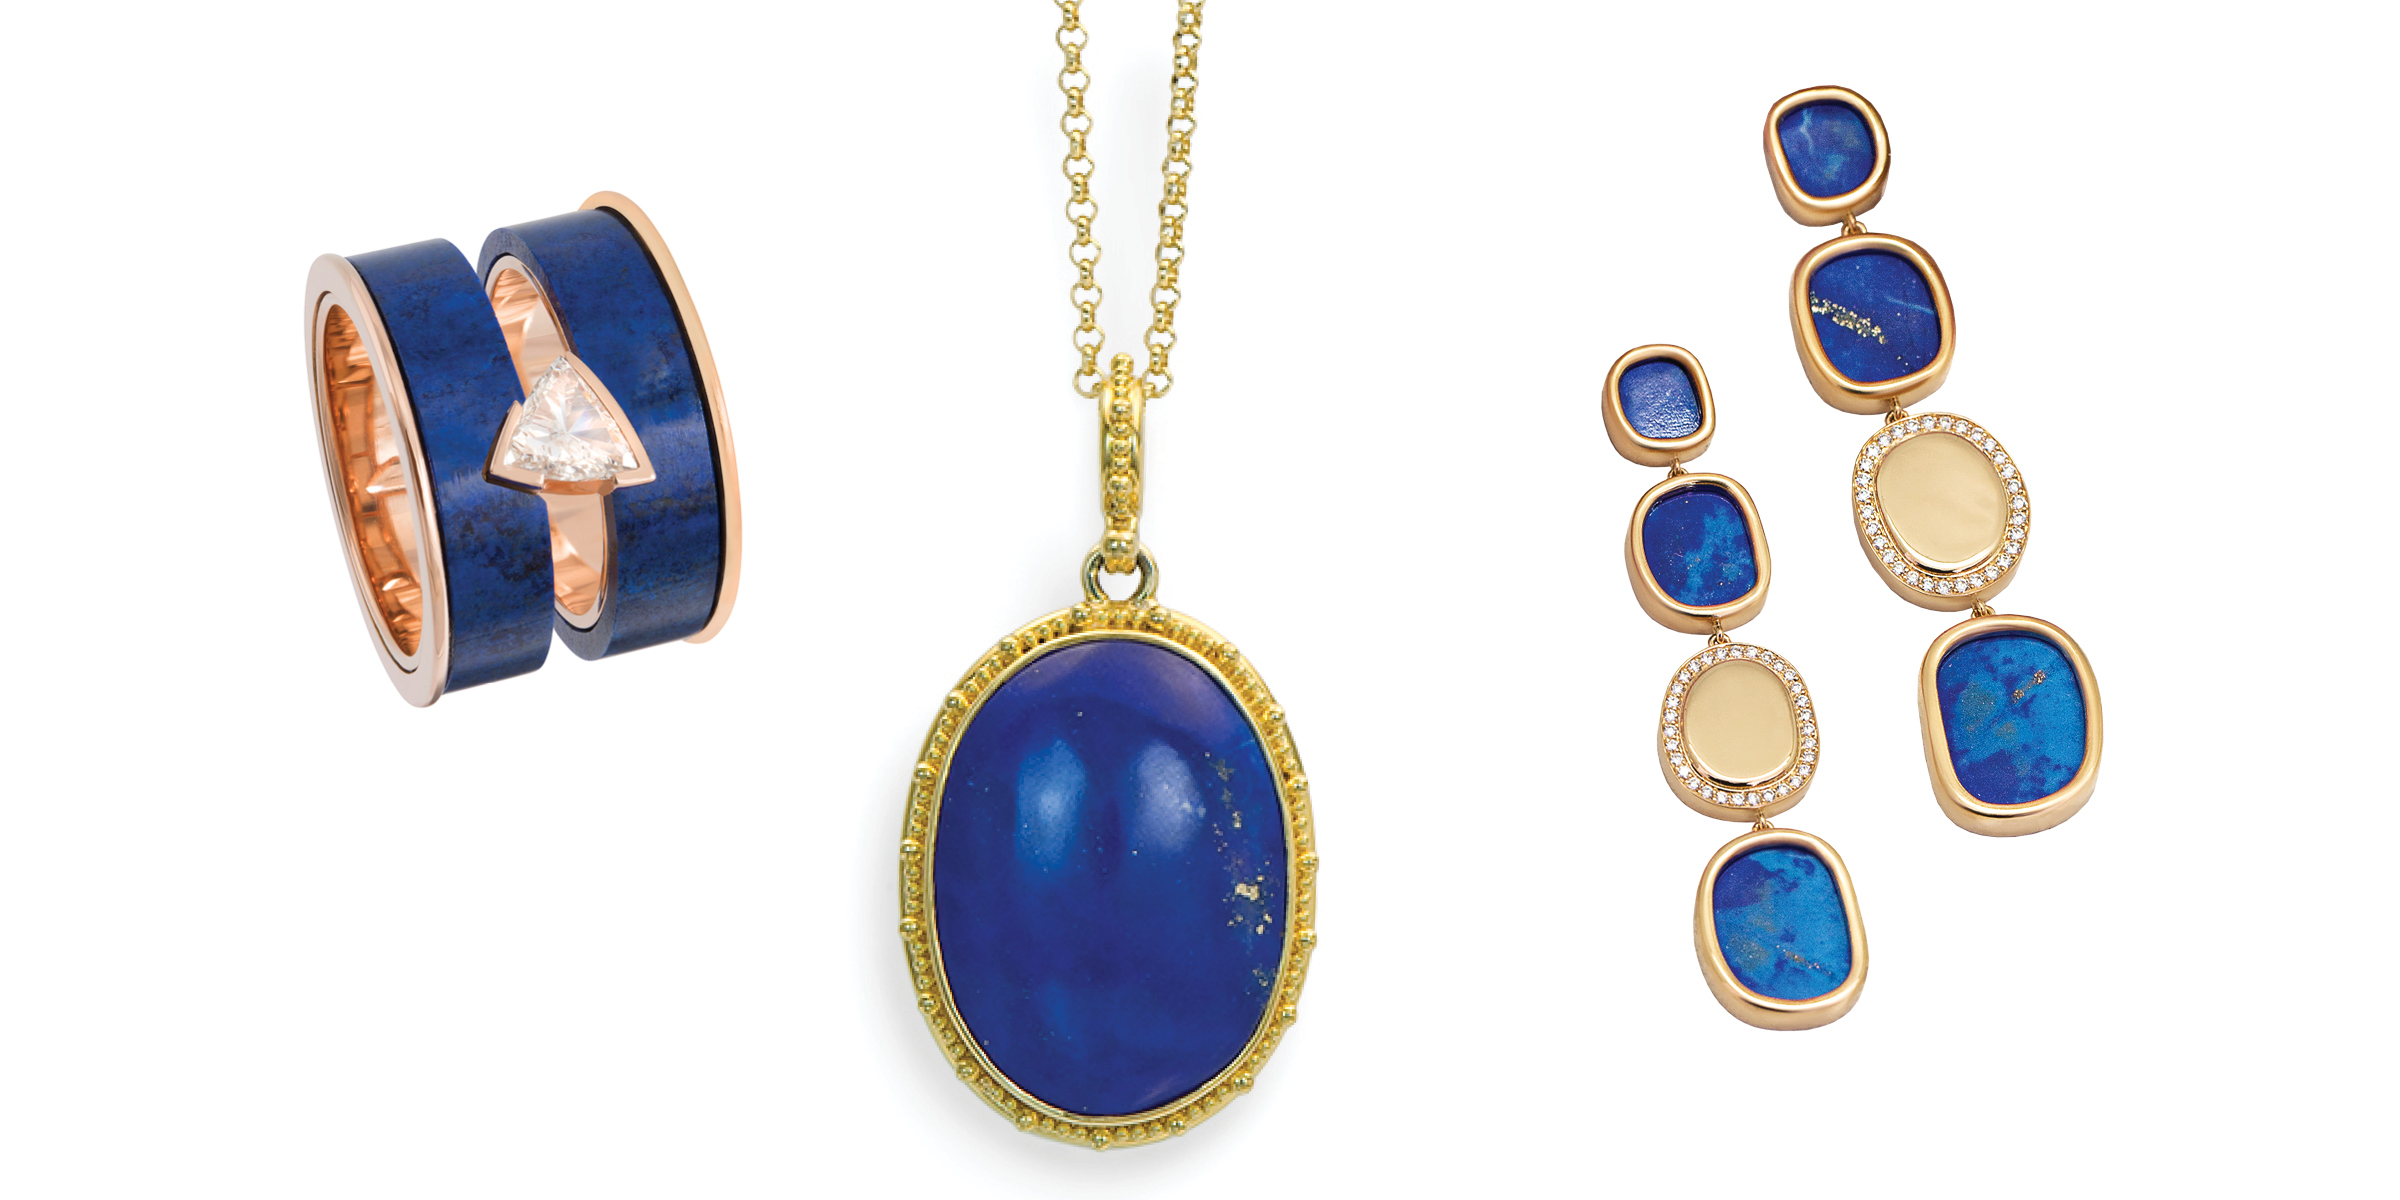 Meet Lapis Lazuli - a curation of jewelry using this stone that was among the most prized luxuries of the ancient world